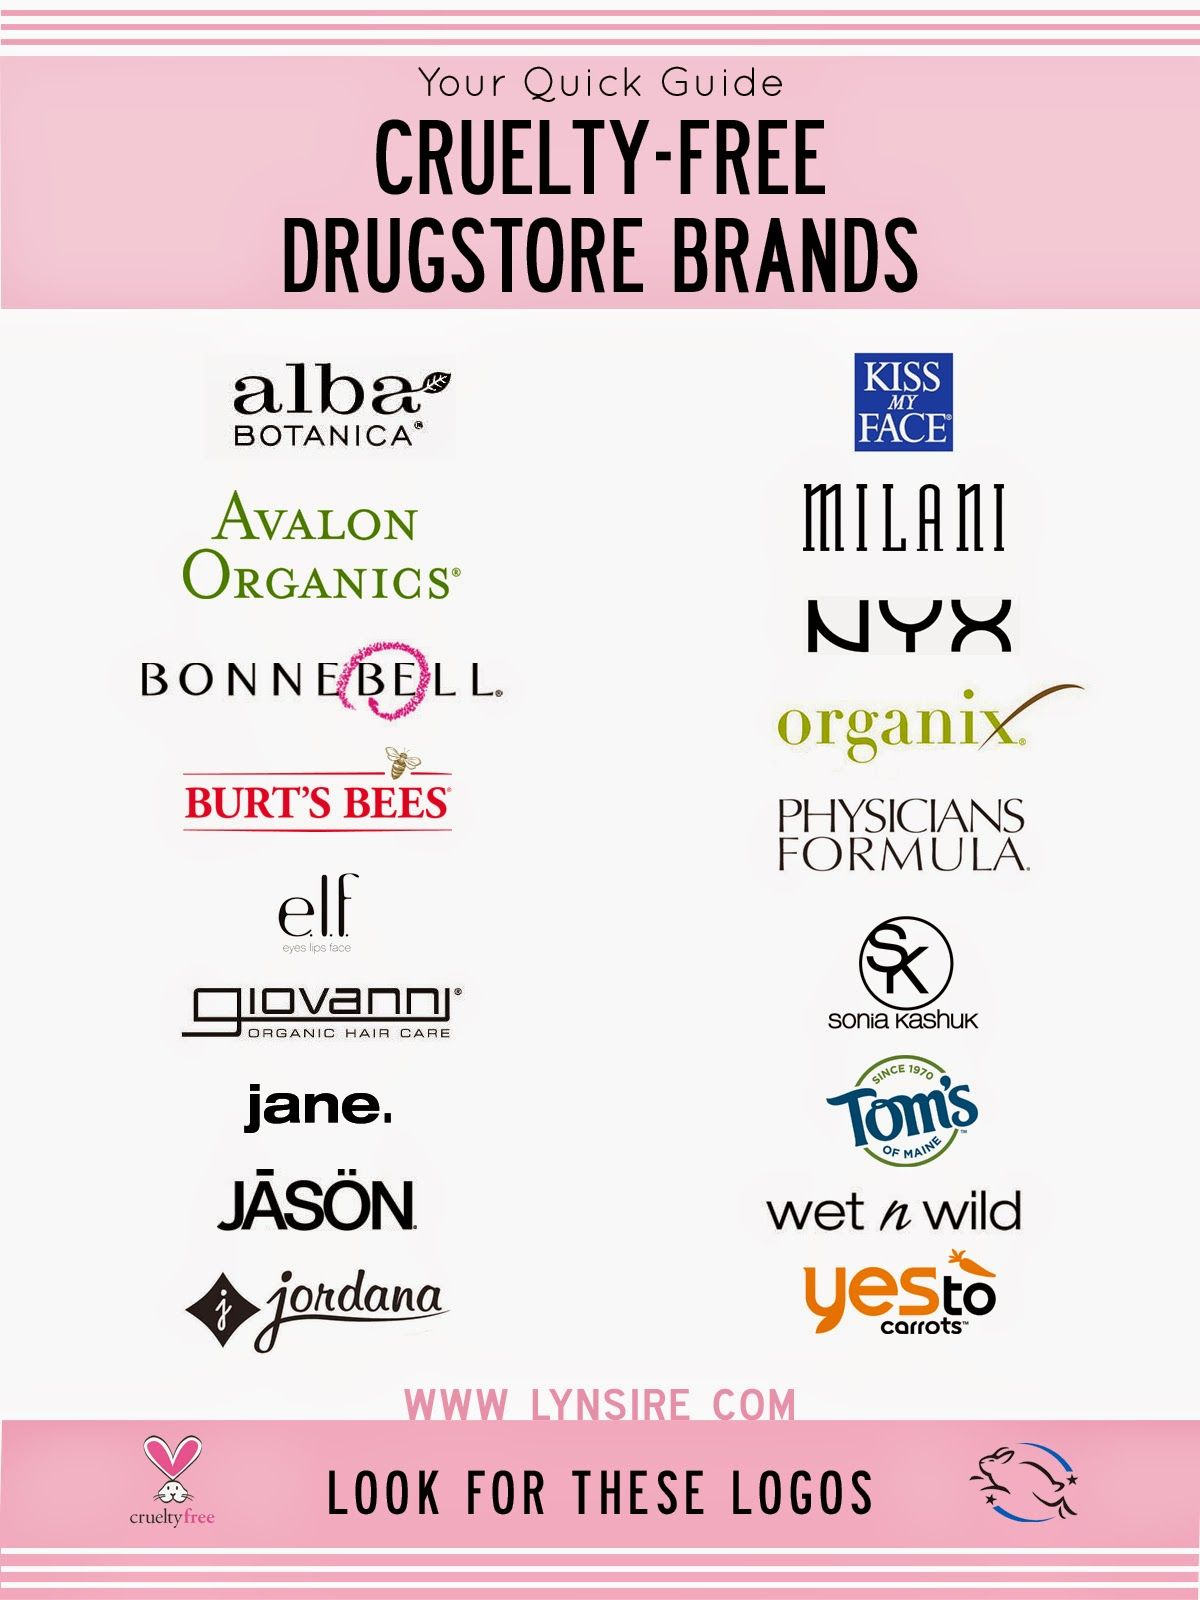 Animal Cruelty Free Makeup Brands Cruelty free, Organic